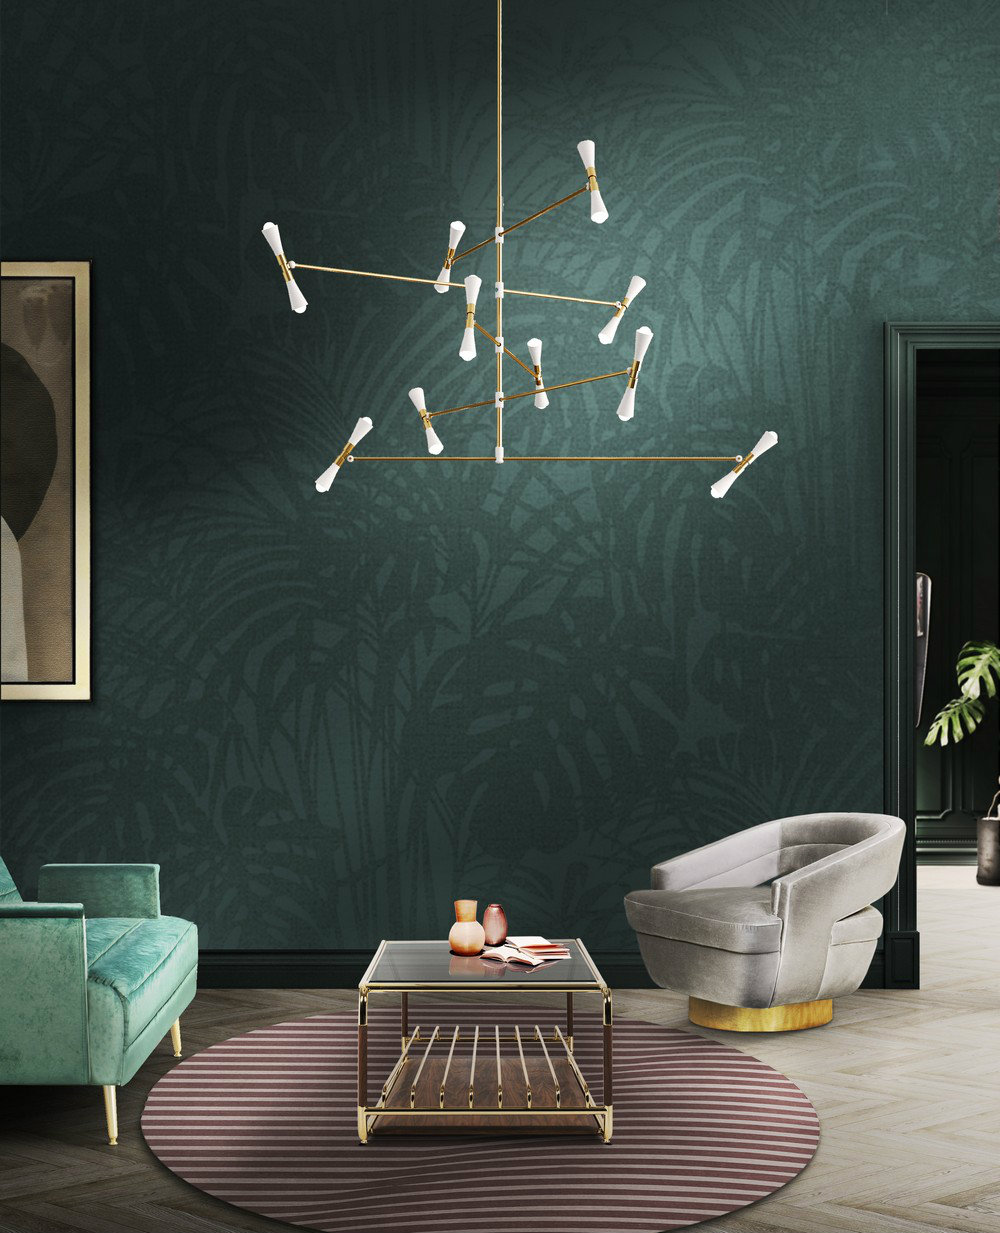 suspension lamps 7 Stylish Suspension Lamps For Your Home Decor 7 Stylish Suspension Lamps For Your Home Decor 5